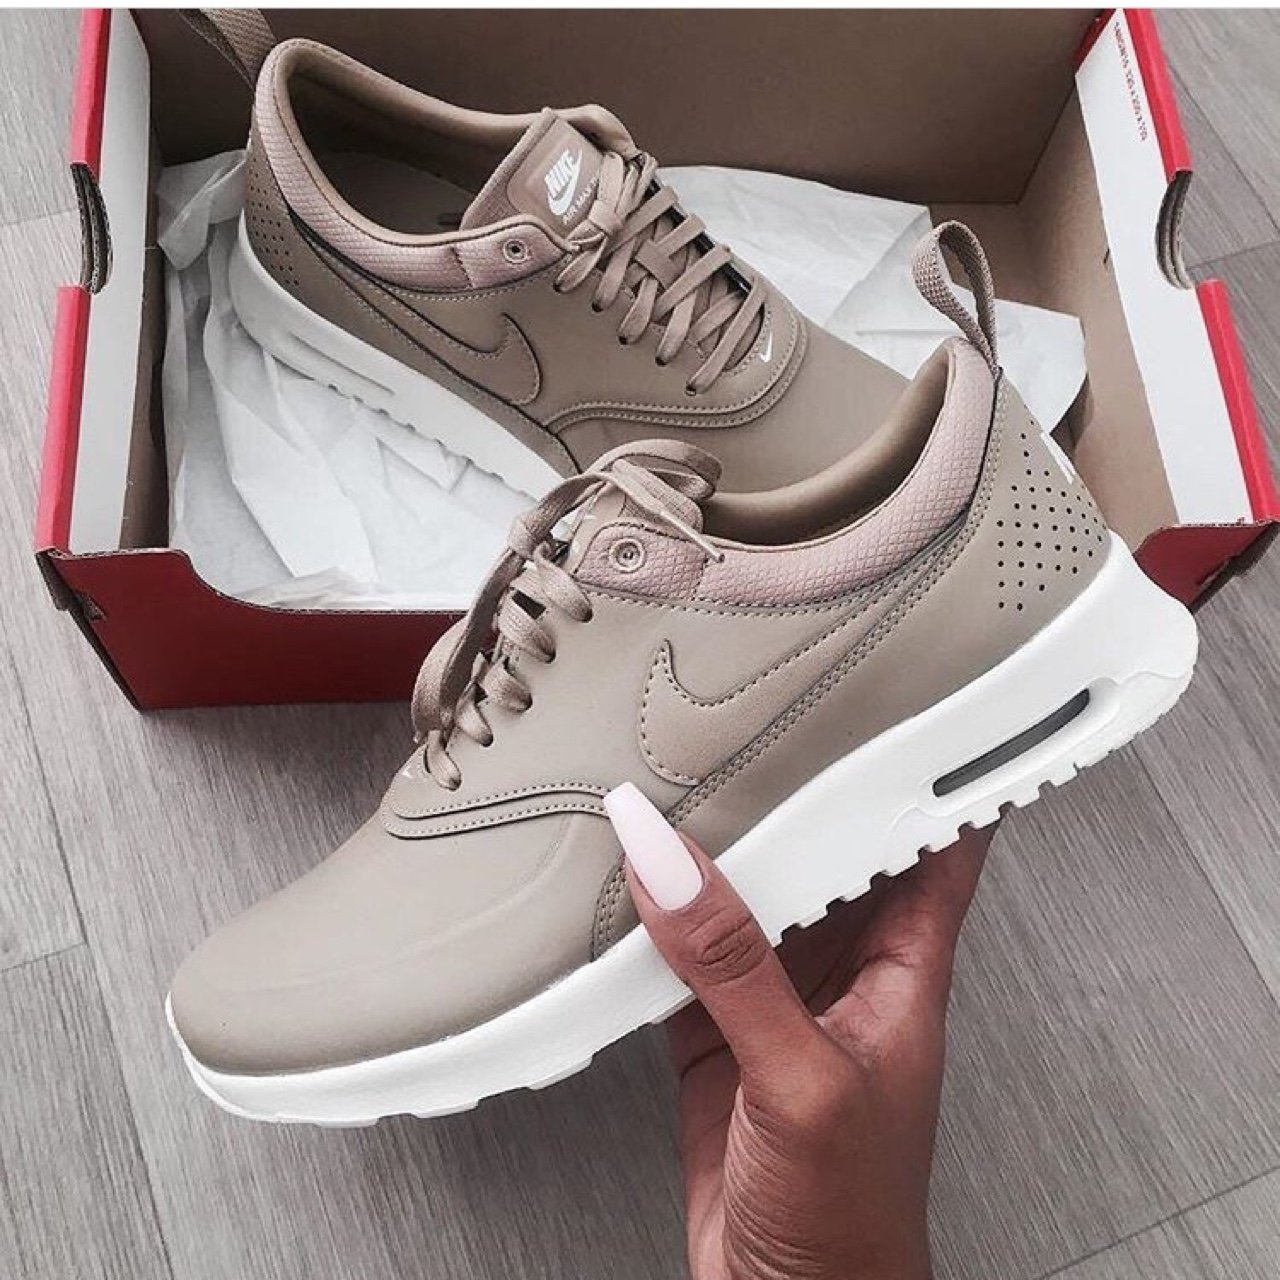 510f0f9b37 Nike Thea Premium Air Max Sand Cargo Beige Stone Trainers as - Depop